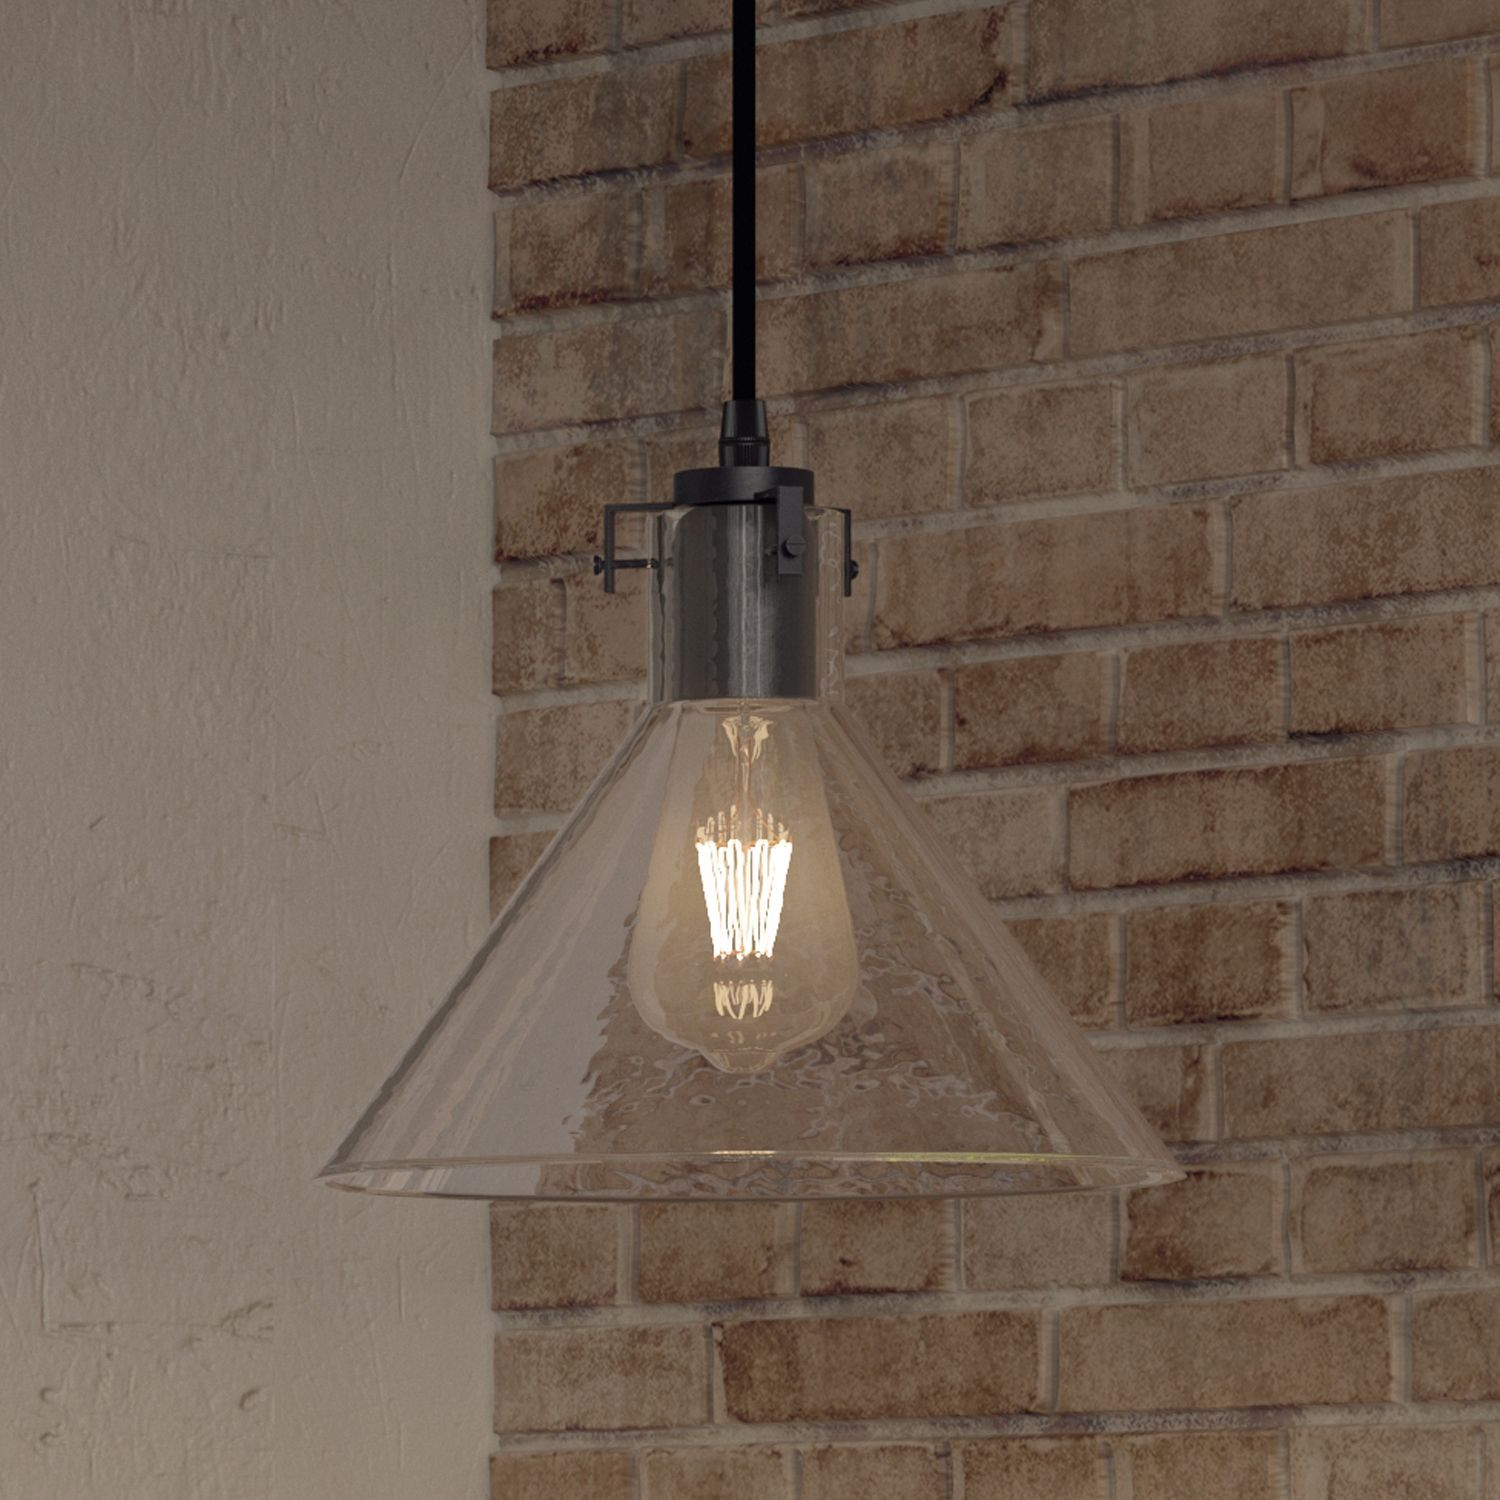 Vonn lighting delphinus pendant light adjustable hanging industrial